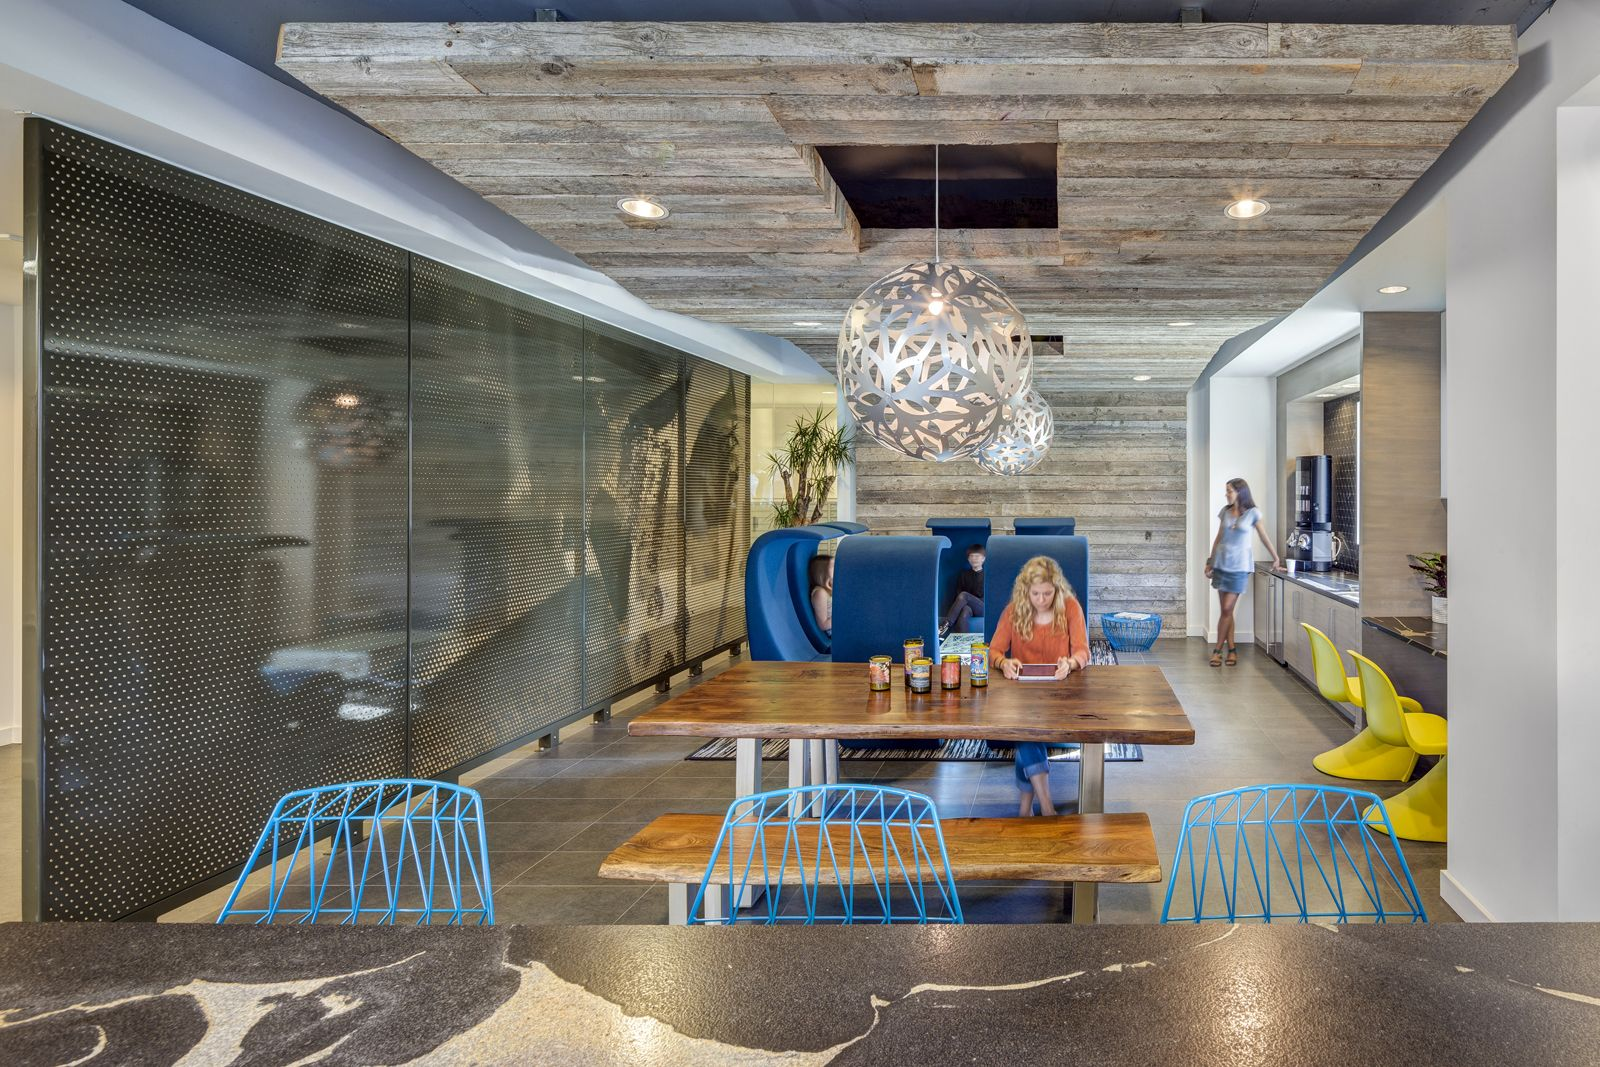 The Hesby Multi Use Space Commercial Interior Design By H Hendy Associates Vitra Commercial Interior Design Modern Office Decor Interior Design Concepts